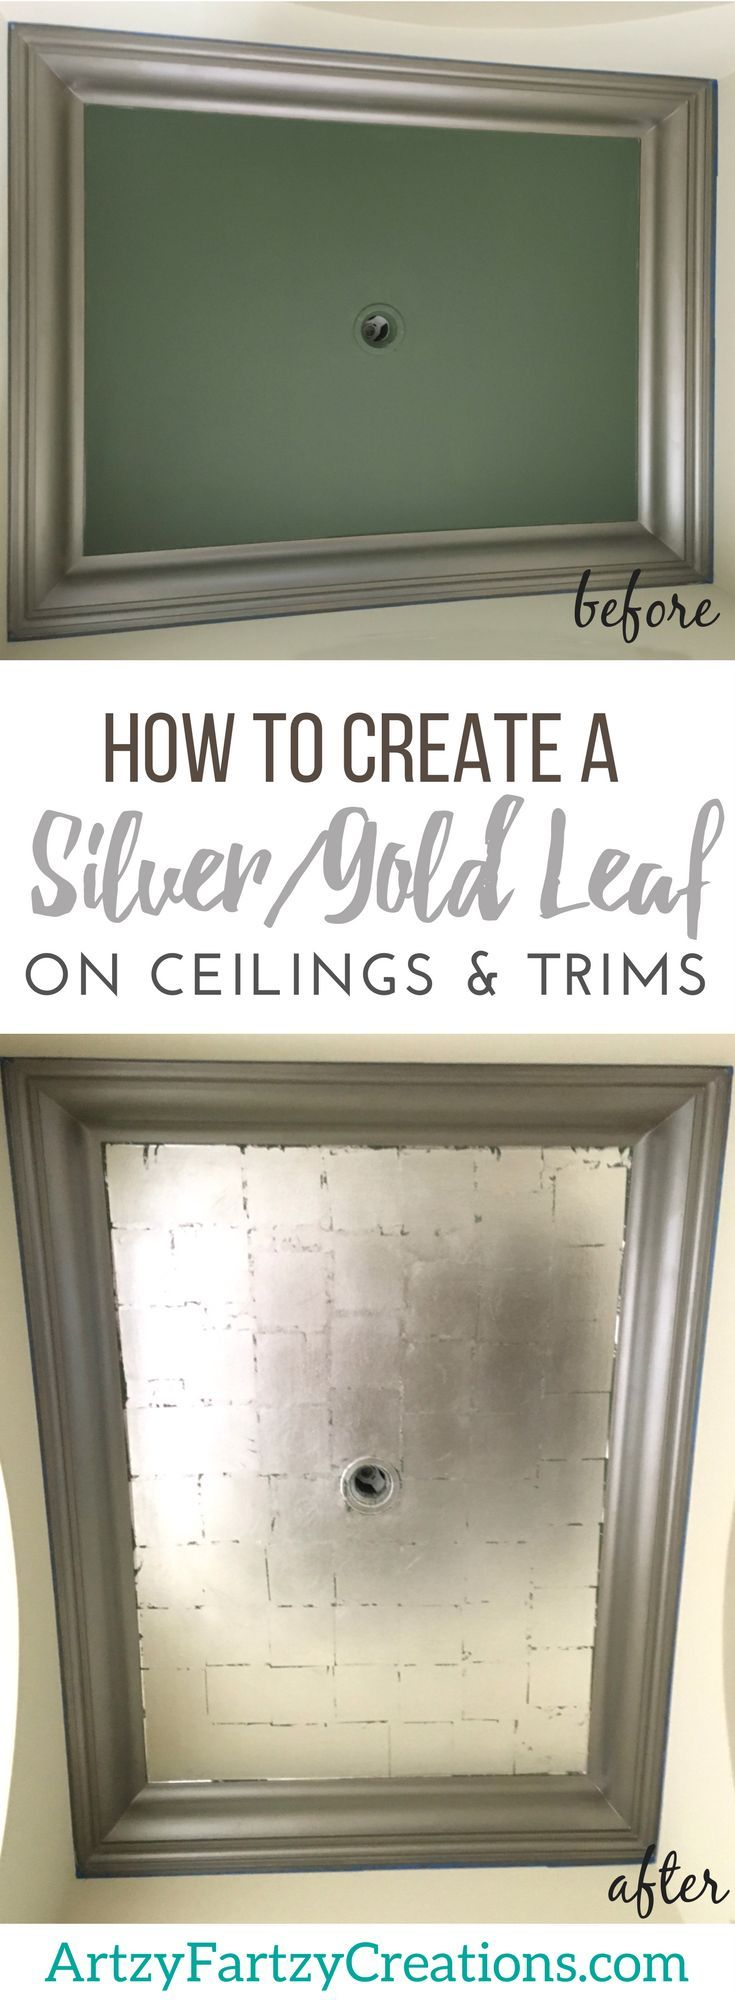 How to apply gold/silver leaf on ceilings and trims for added drama, dimension and color! Free tutorial by professional faux finish painter Cheryl Phan of ArtzyFartzyCreations.com | Painted Ceilings + Silver Paint + Silver Leafing + Gold Leafing + Paintin